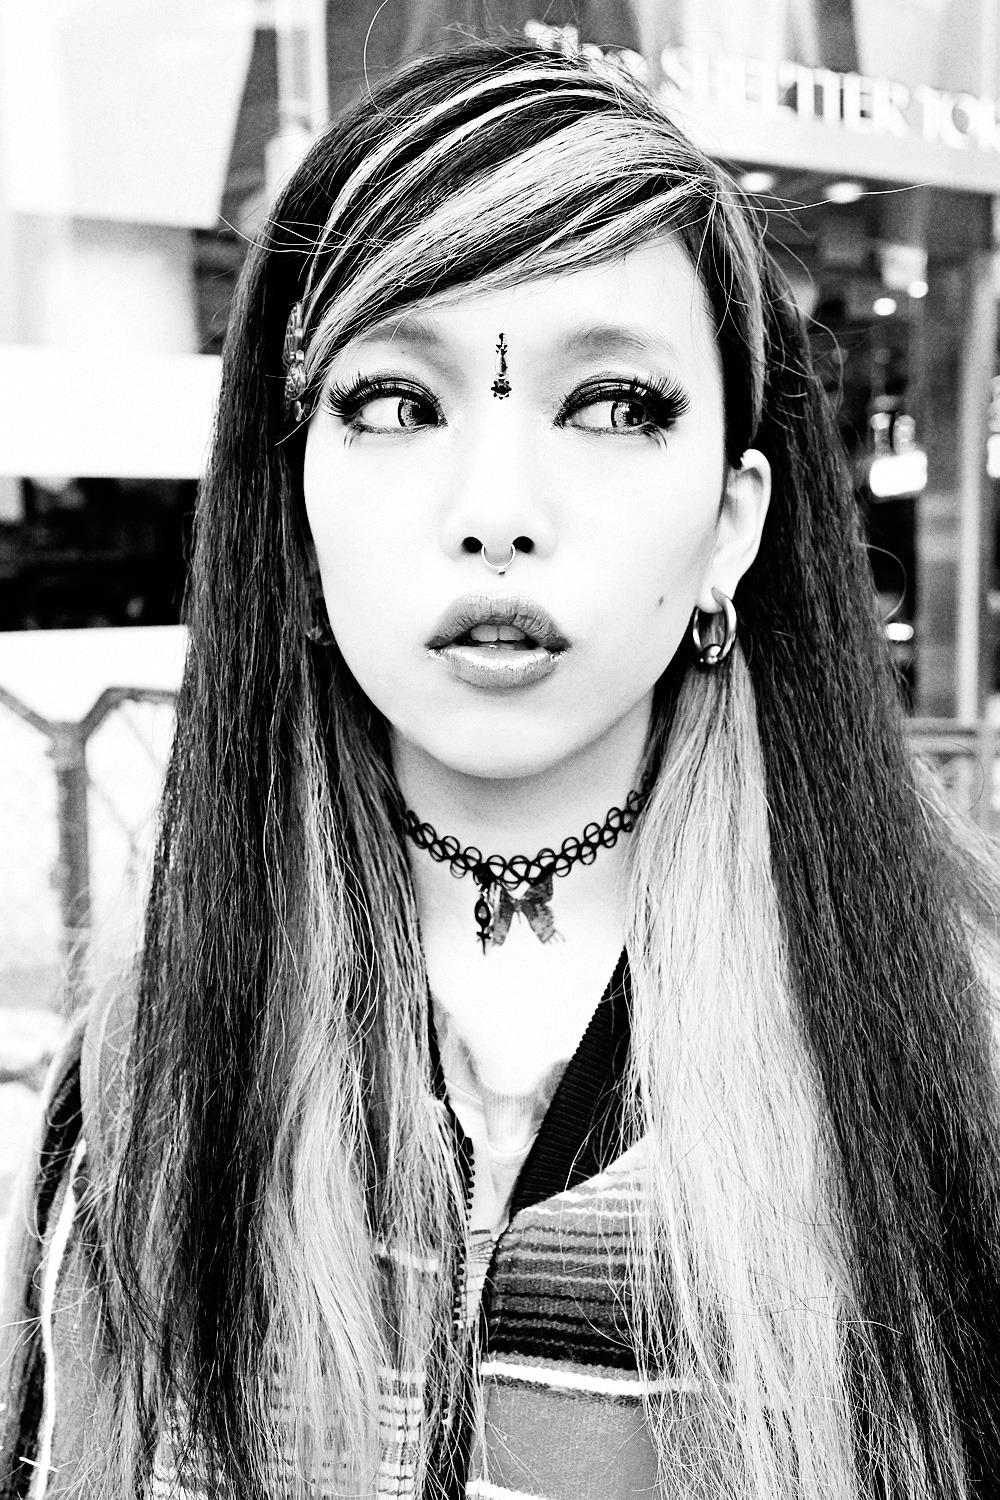 Hirari Ikeda in Harajuku. I was going for the look of an old Edie Sedgwick photo, but couldn't quite get the light right. :-)